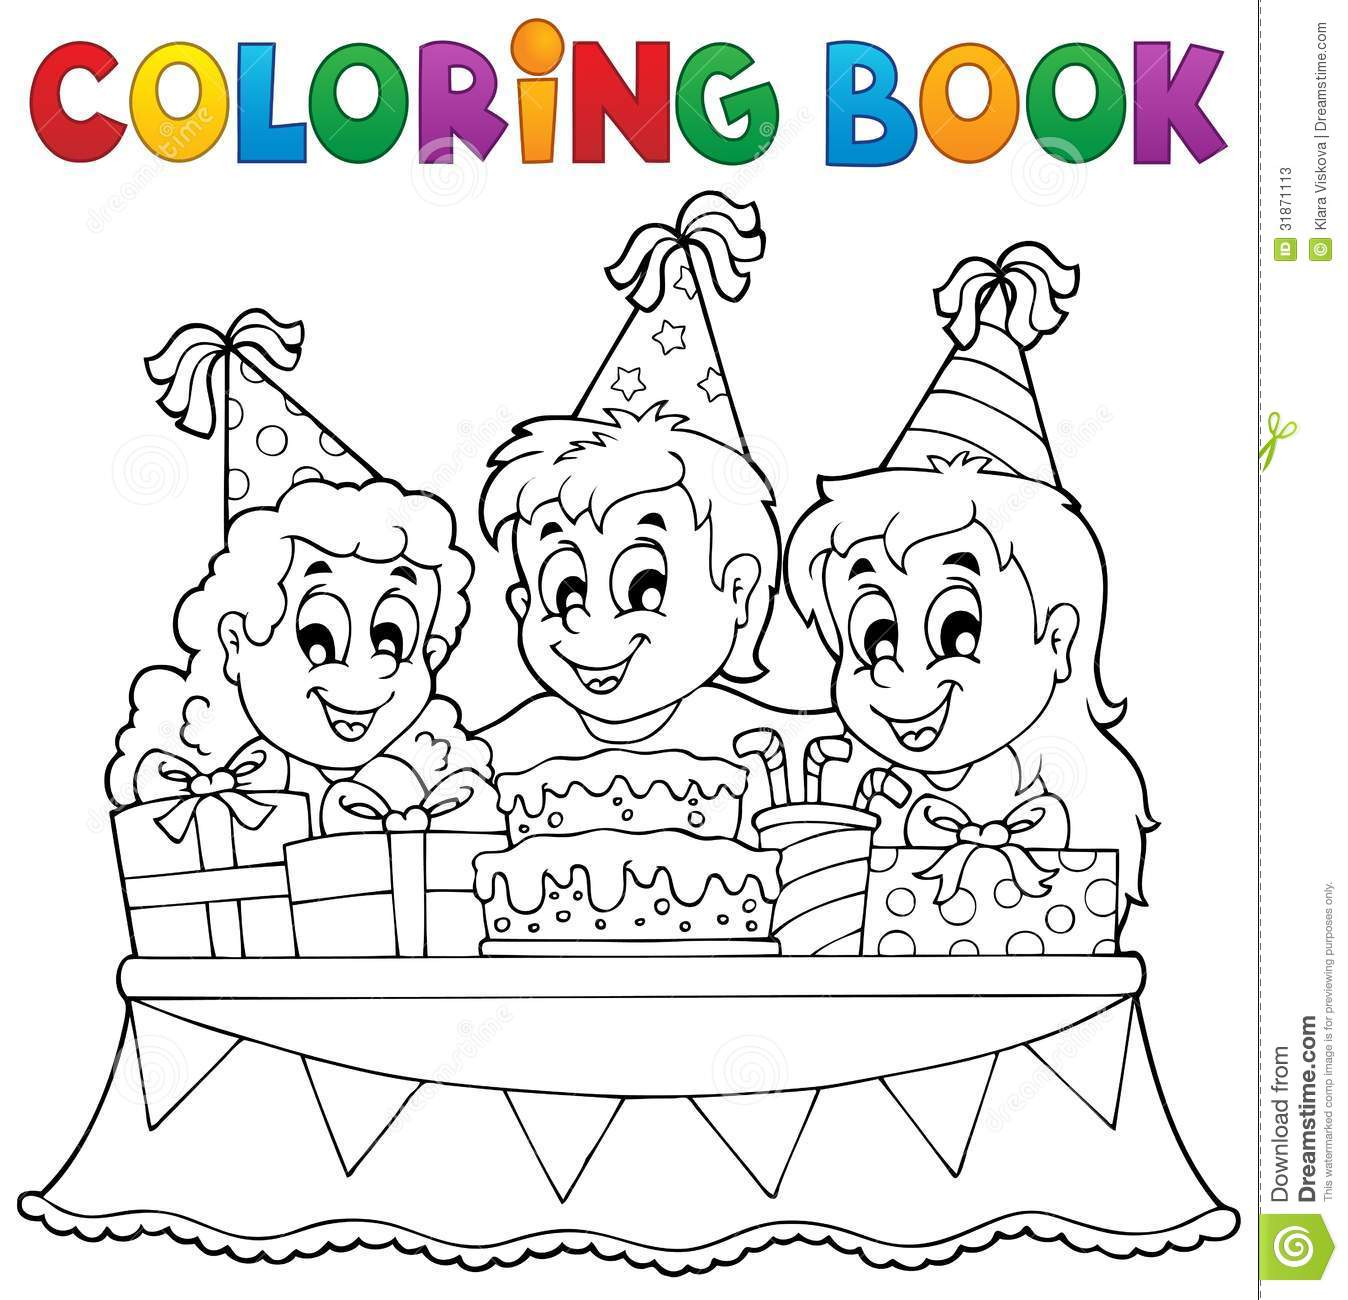 coloring book kids party theme 1 stock photos